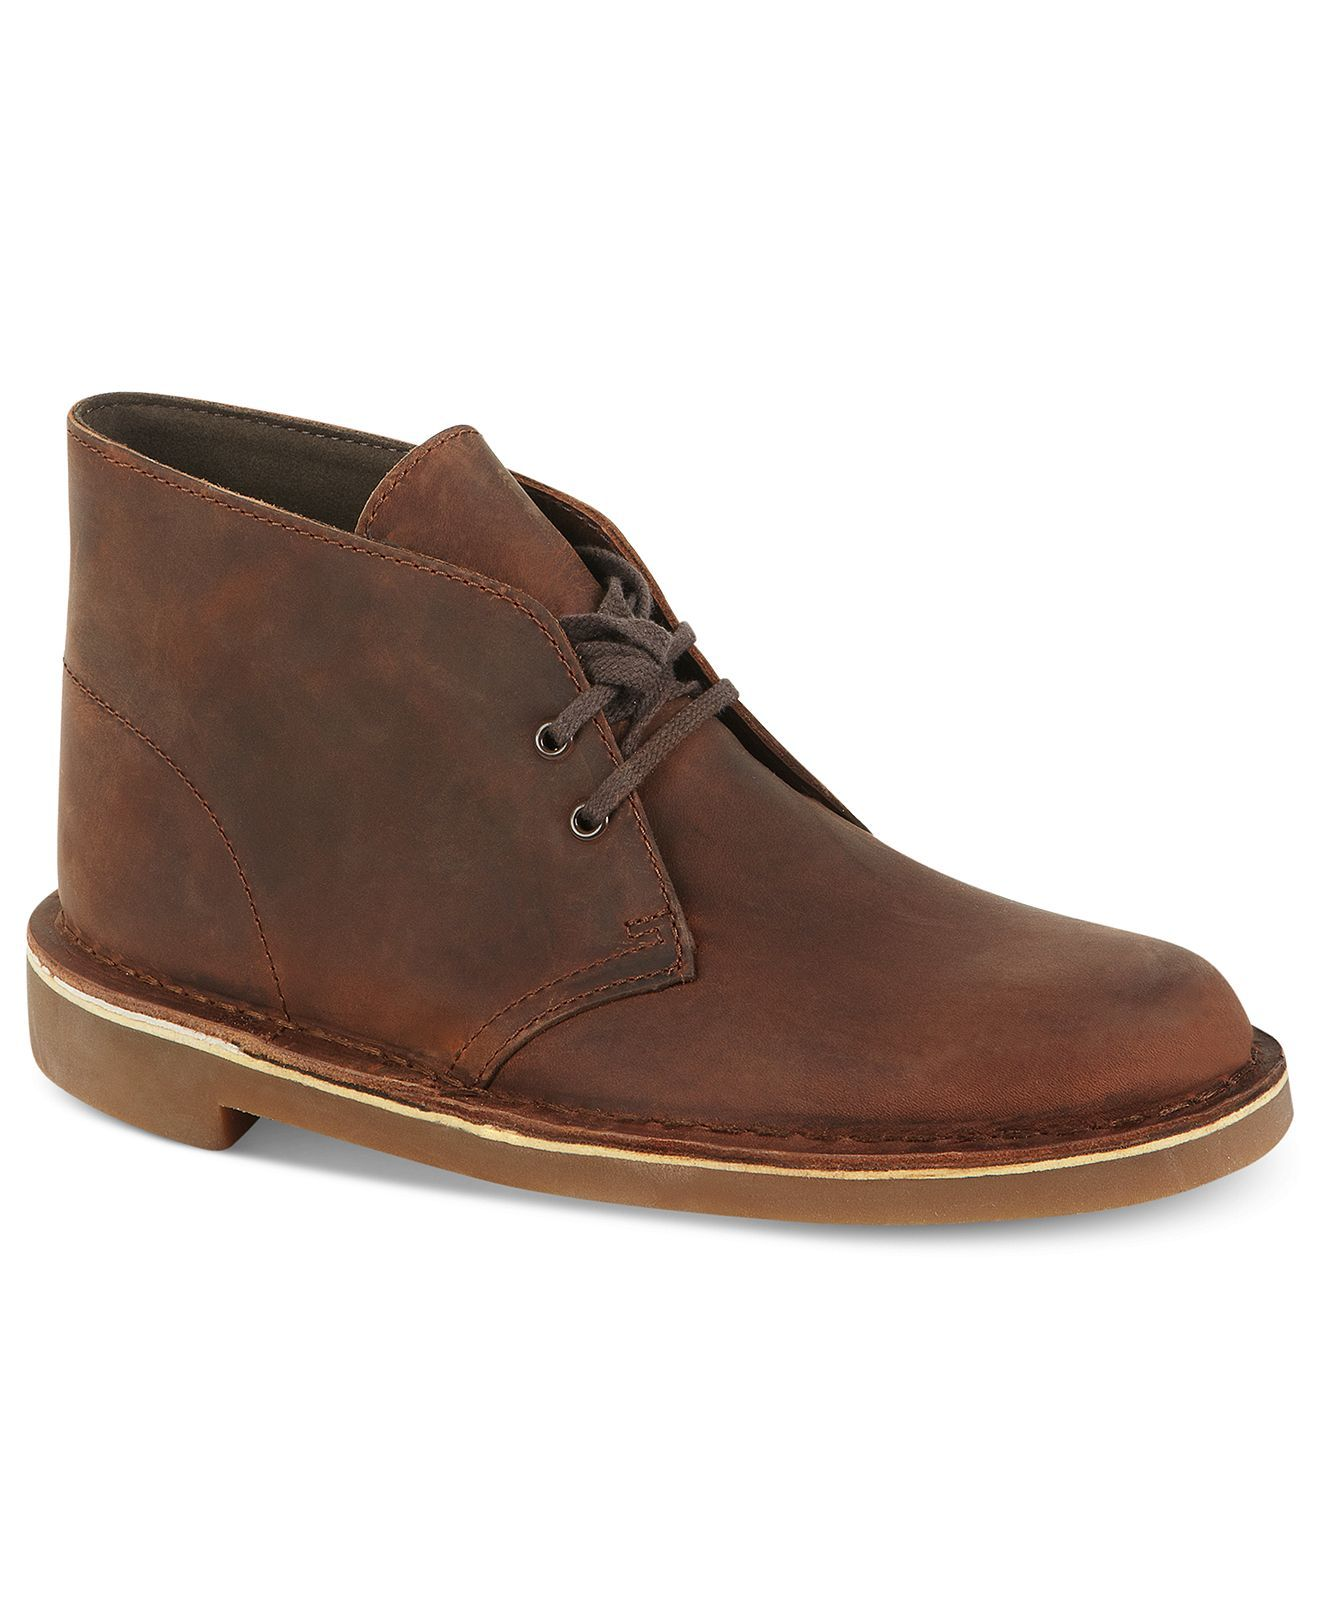 Clarks Mens Bushacre 2 Chukka Boot Brown